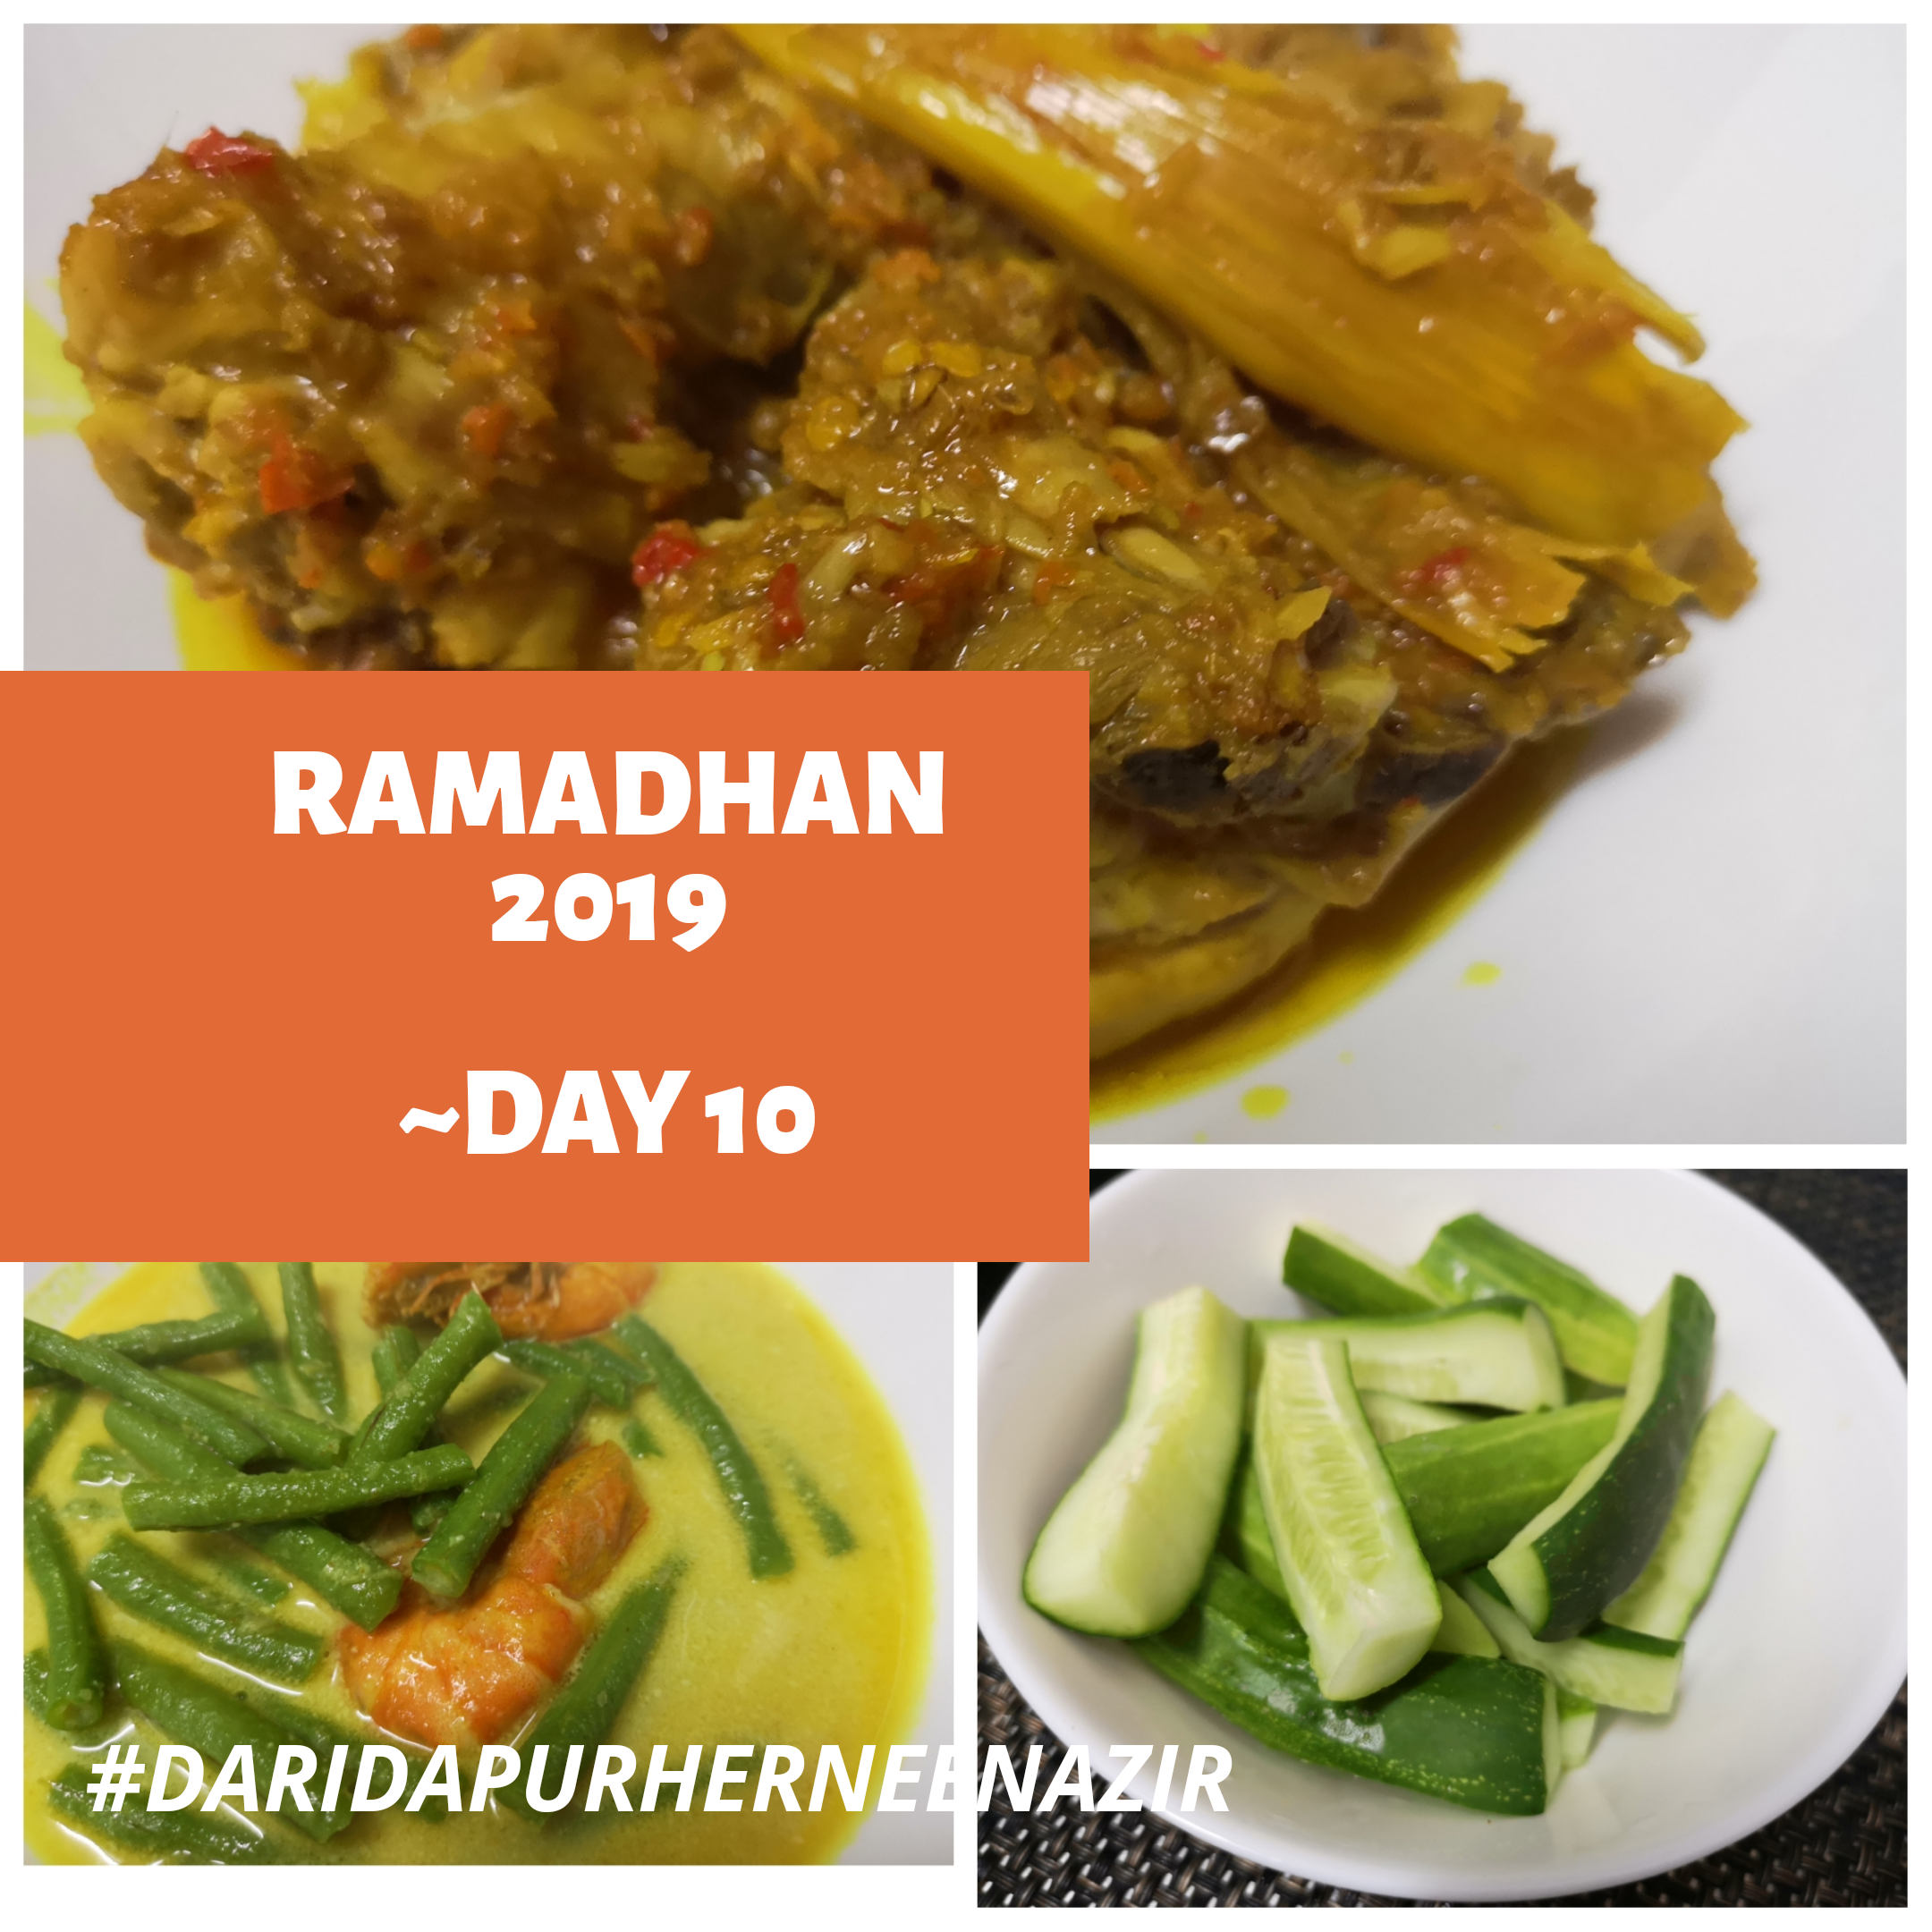 Ramadhan 2019 – Day 10